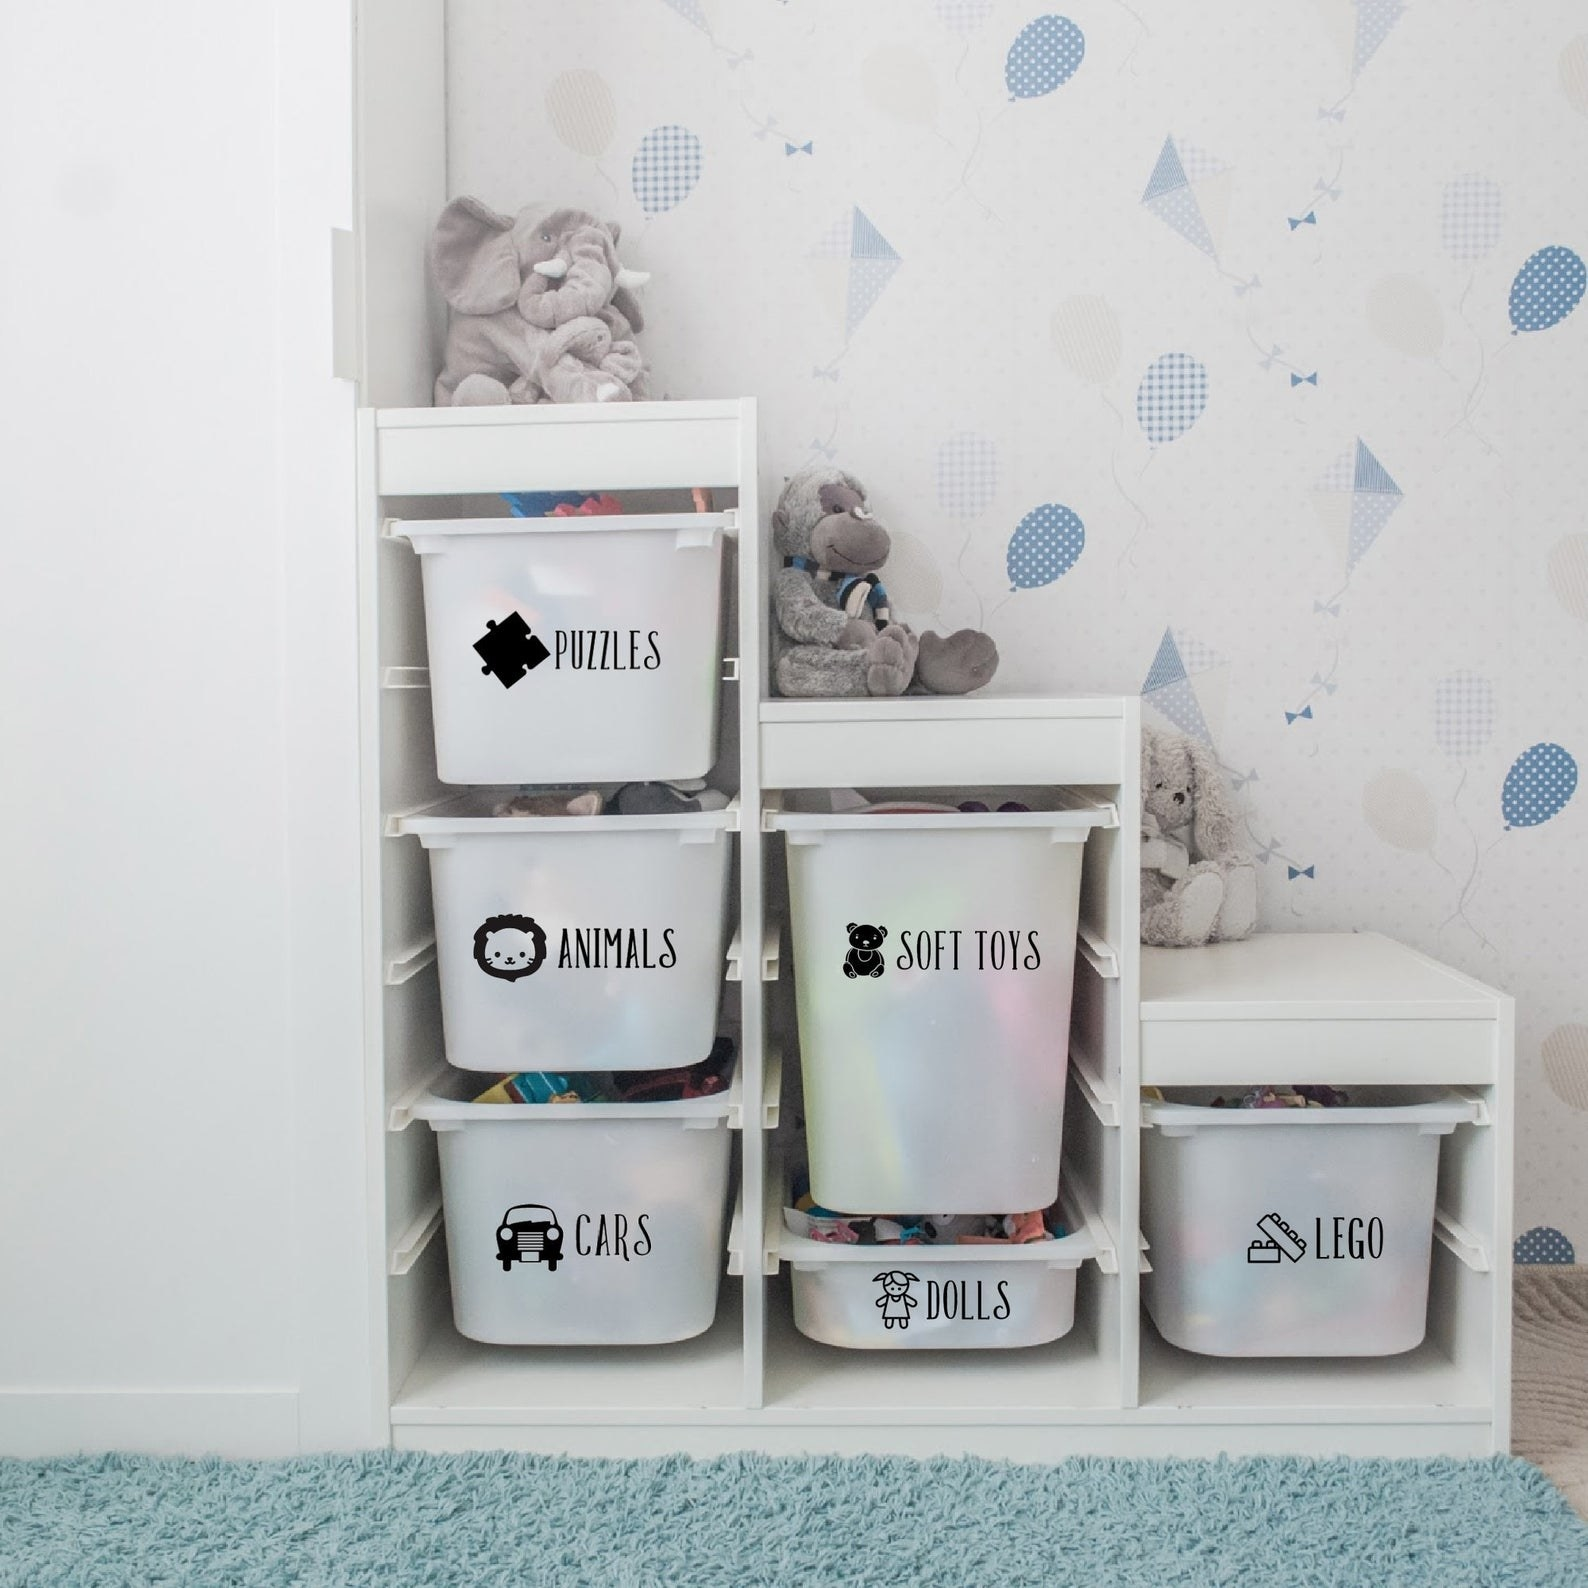 The custom vinyl labels applied on the toy storage bins